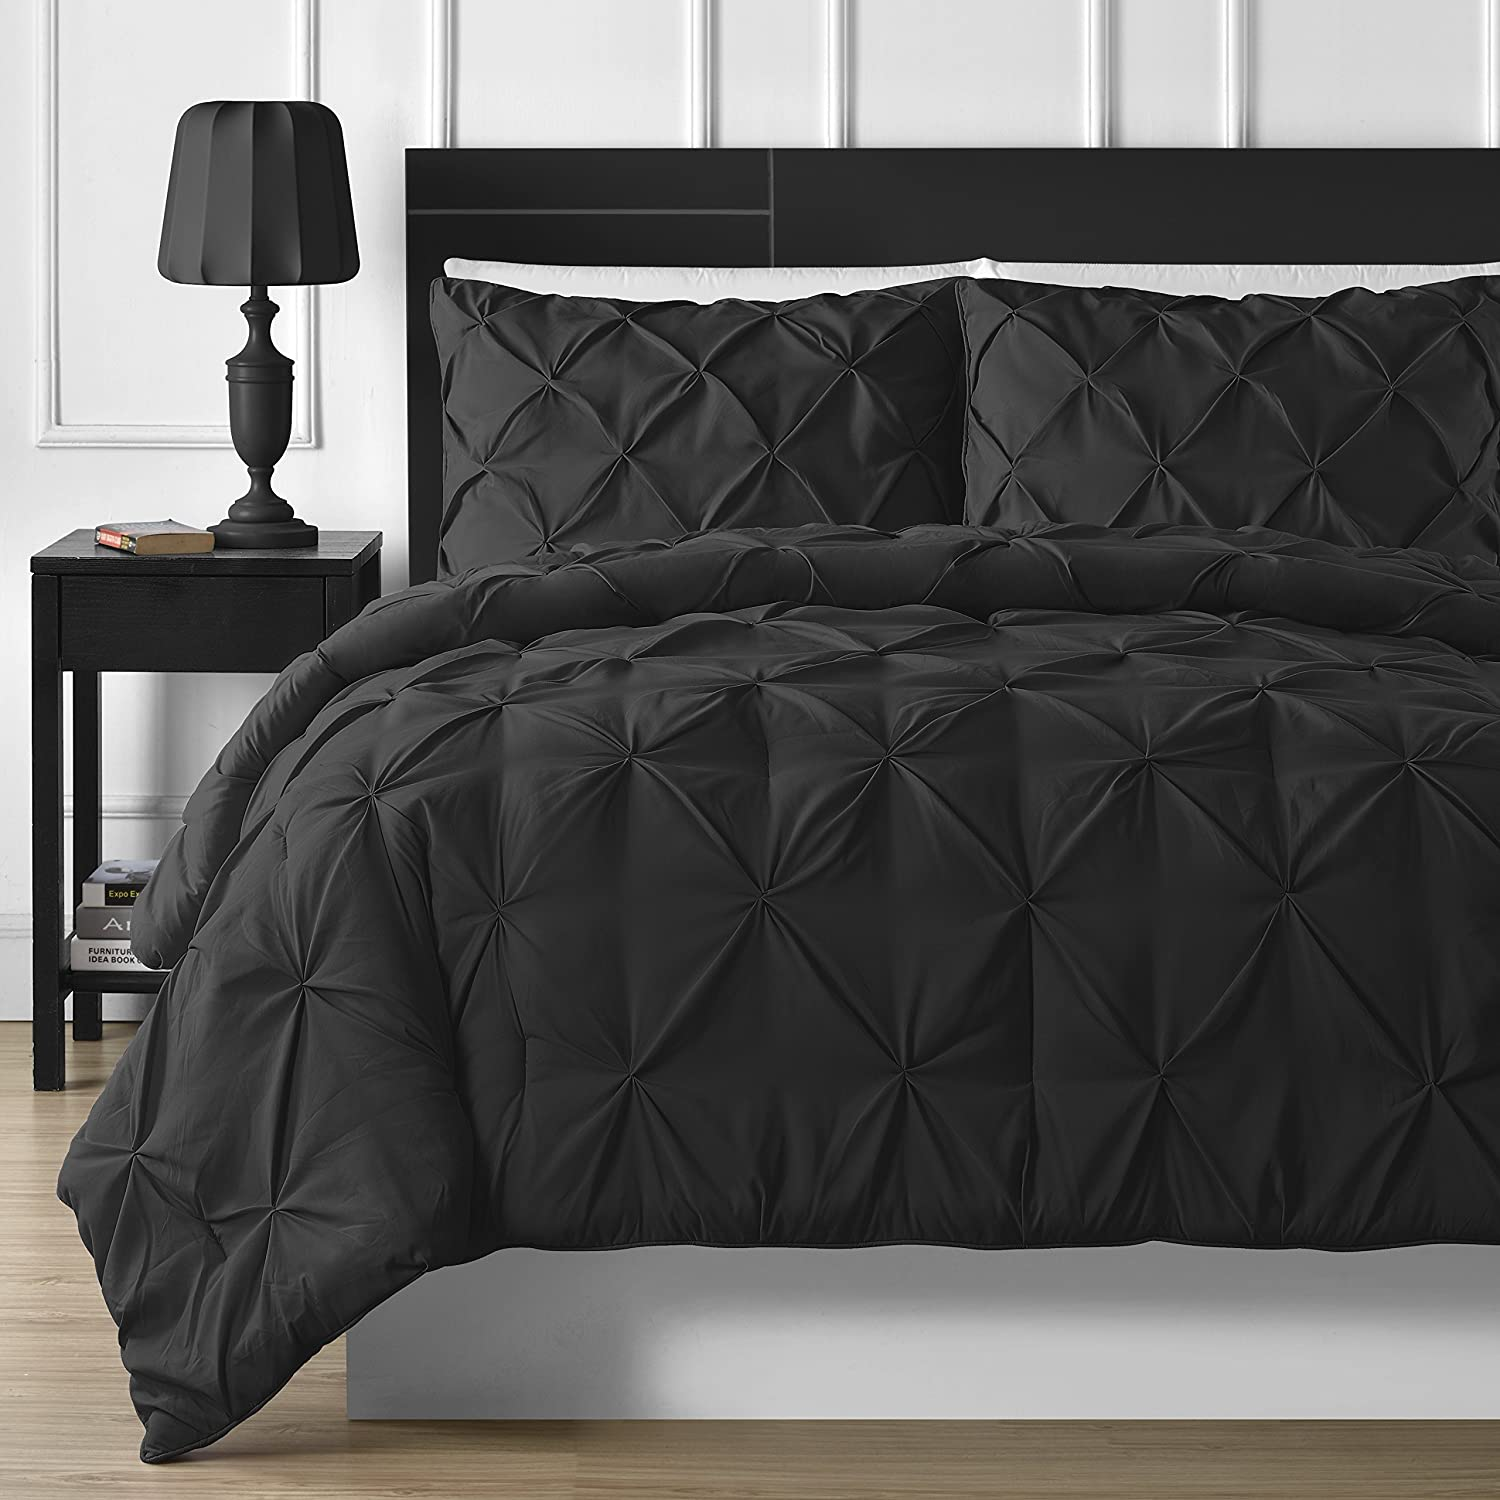 7-PC Comfy Bedding Durable Stitching Pinch Pleat Comforter and Sheet Set Queen, Black